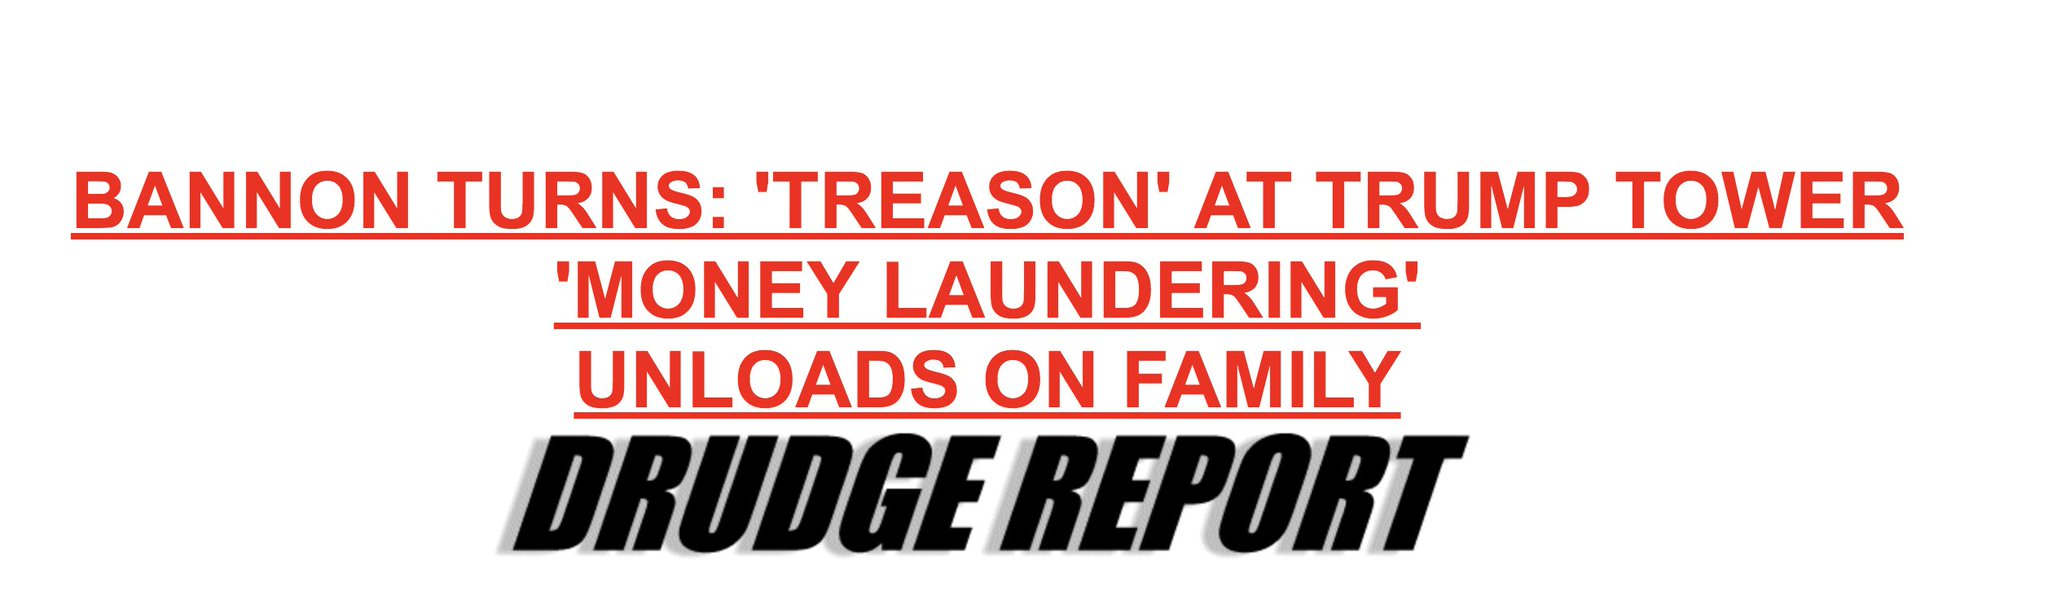 Drudge now: https://t.co/4w8qUxBOaF